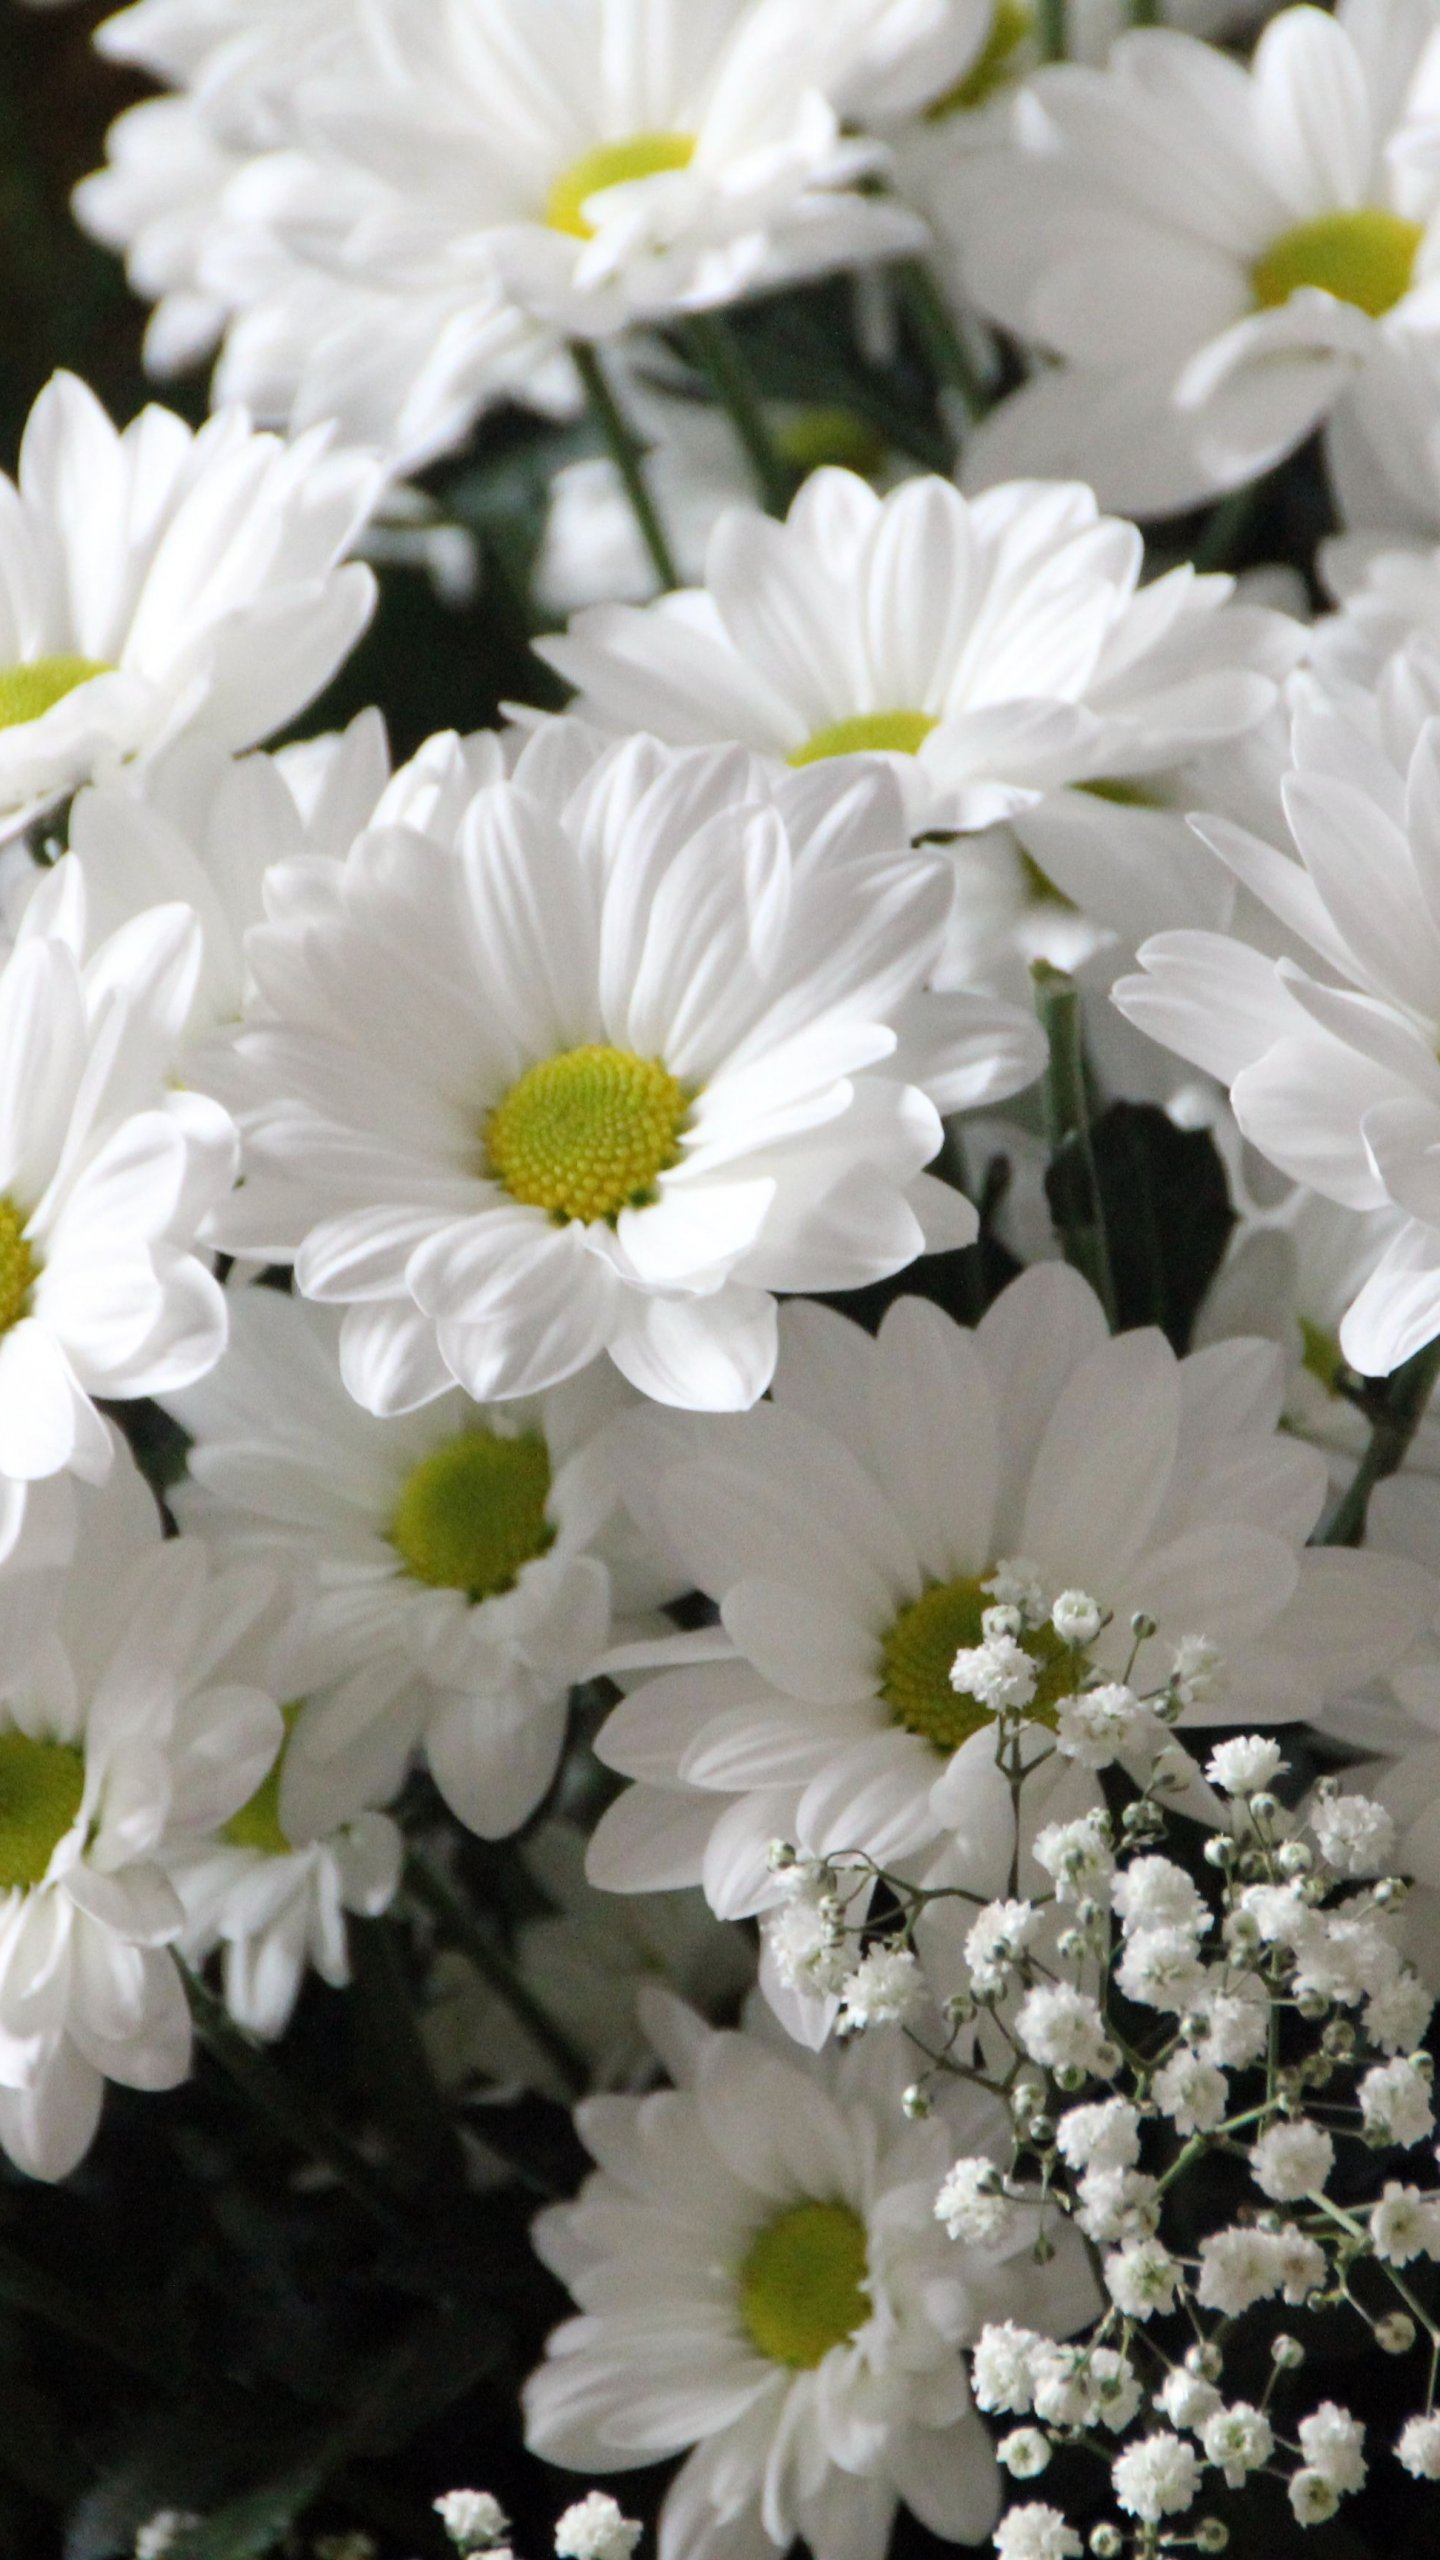 White Daisies Wallpaper Iphone Android Desktop Backgrounds